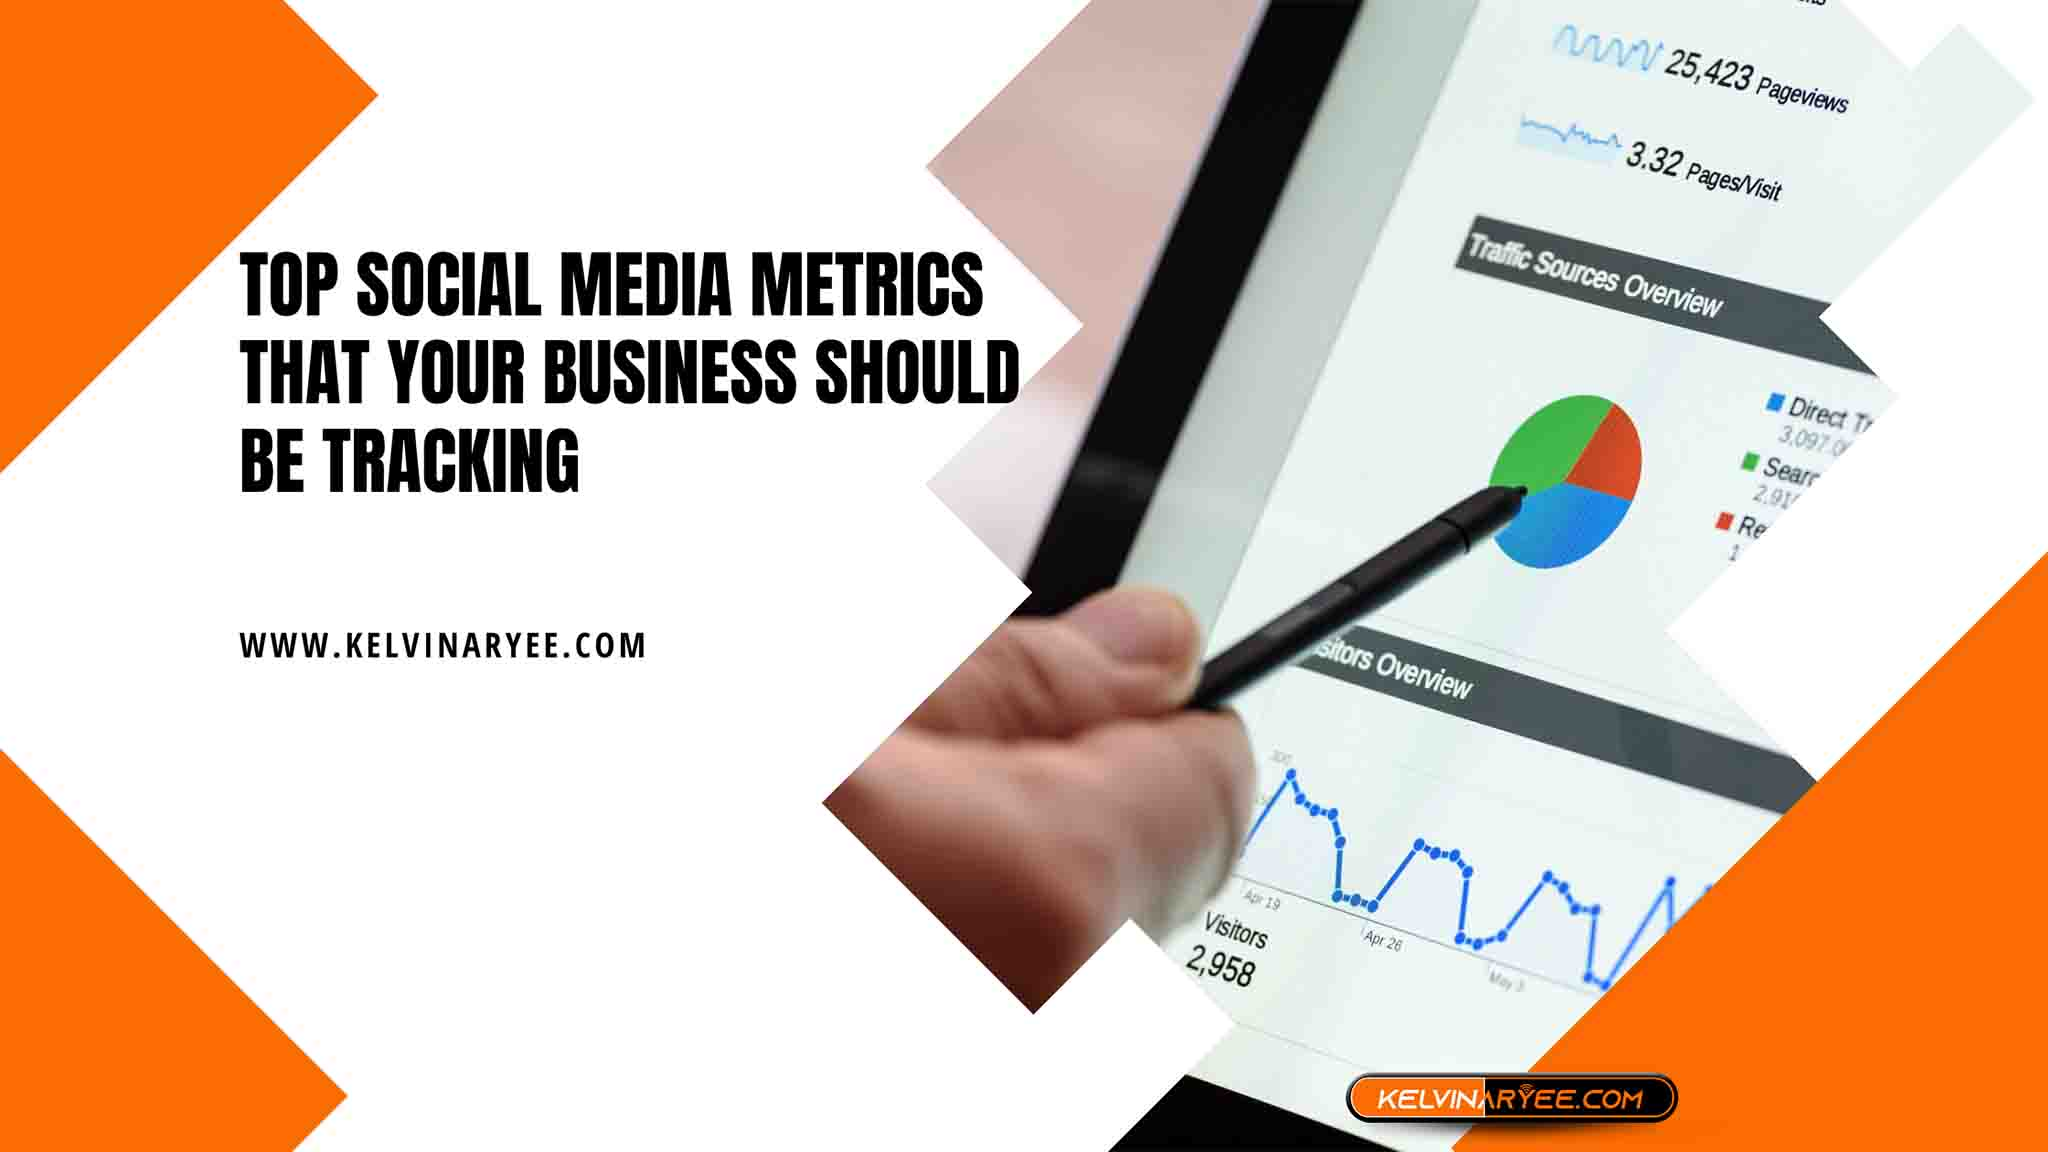 Top Social Media Metrics That Your Business Should Be Tracking